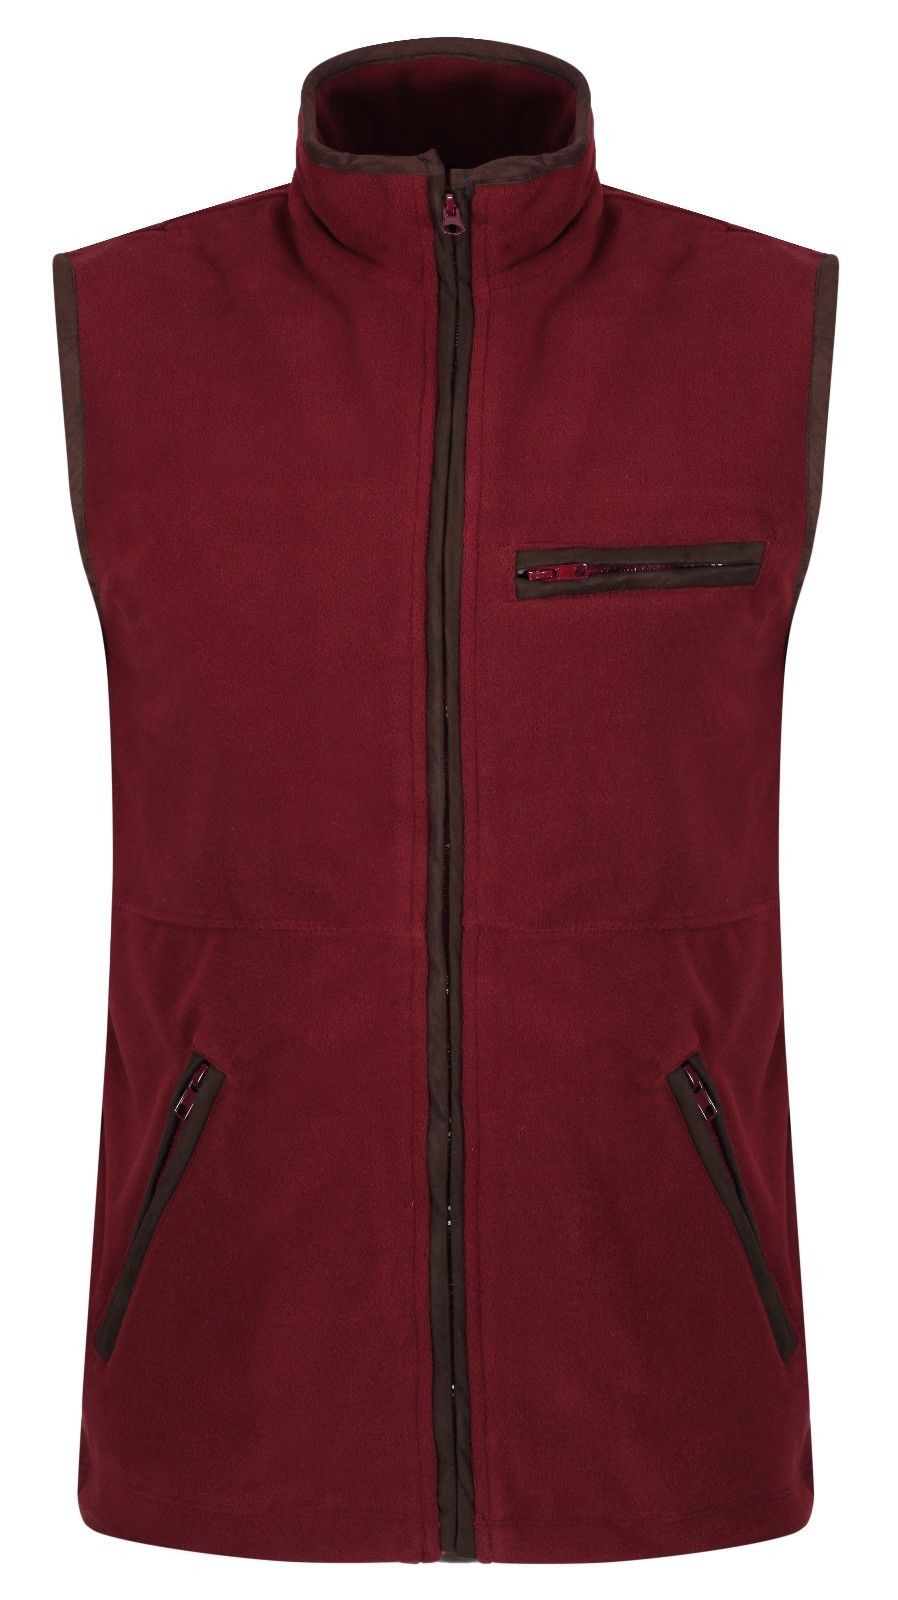 Quality Claret Fleece Gilet Shooting Body Warmer Vest Hunting Jumper Top New